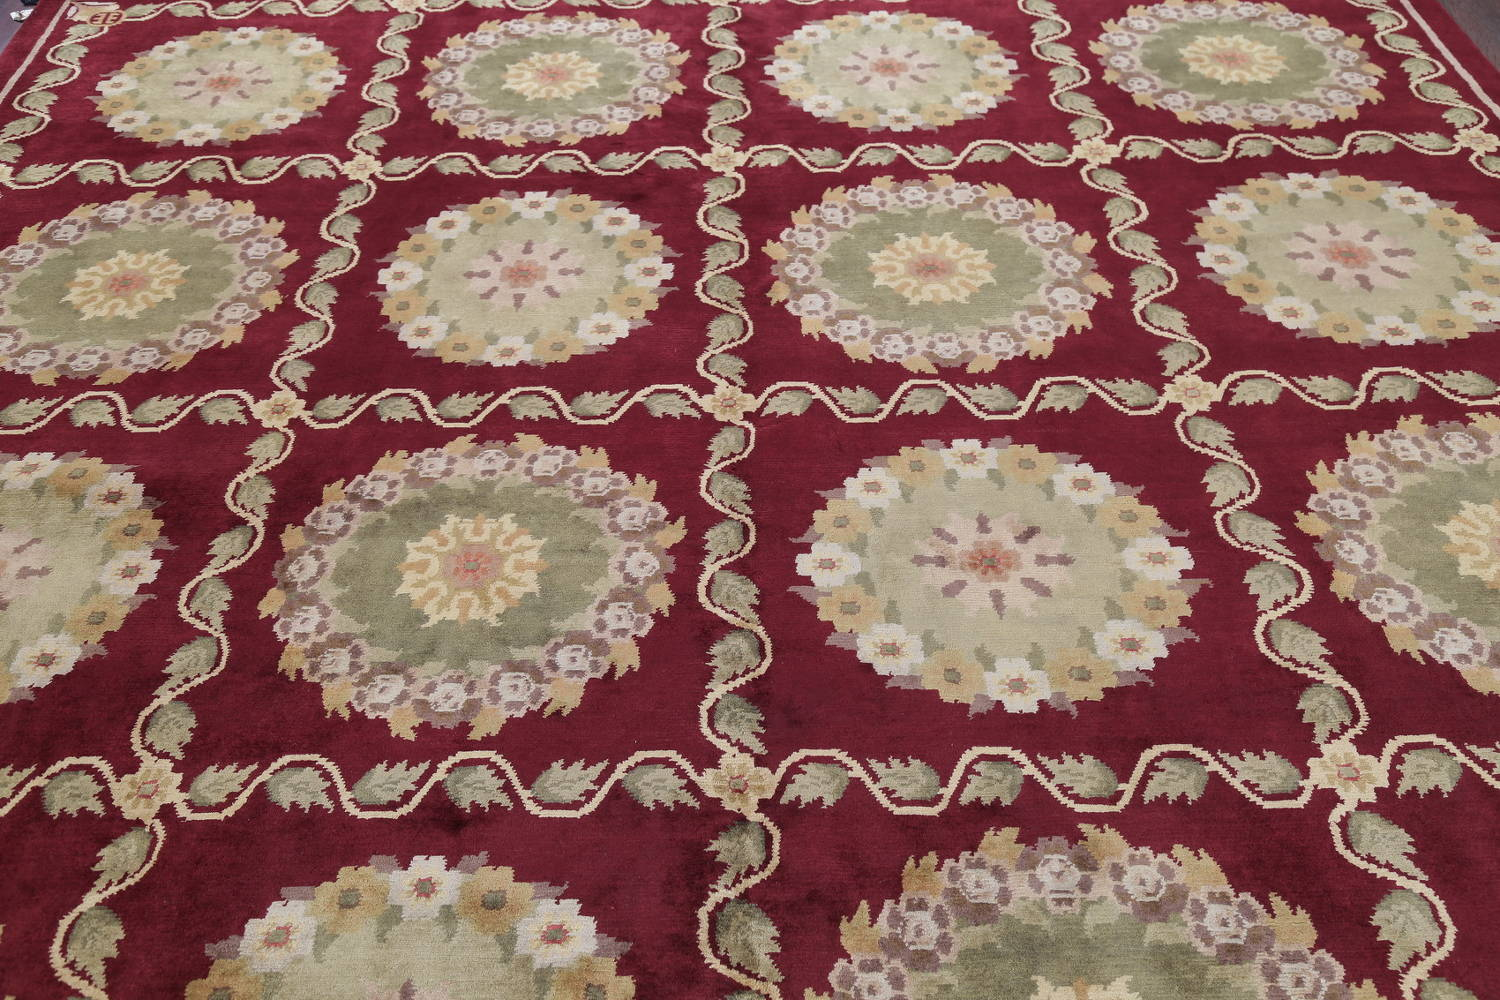 Geometric Red Aubusson Kathmando Oriental Hand-Knotted Area Rug 10x15 image 10